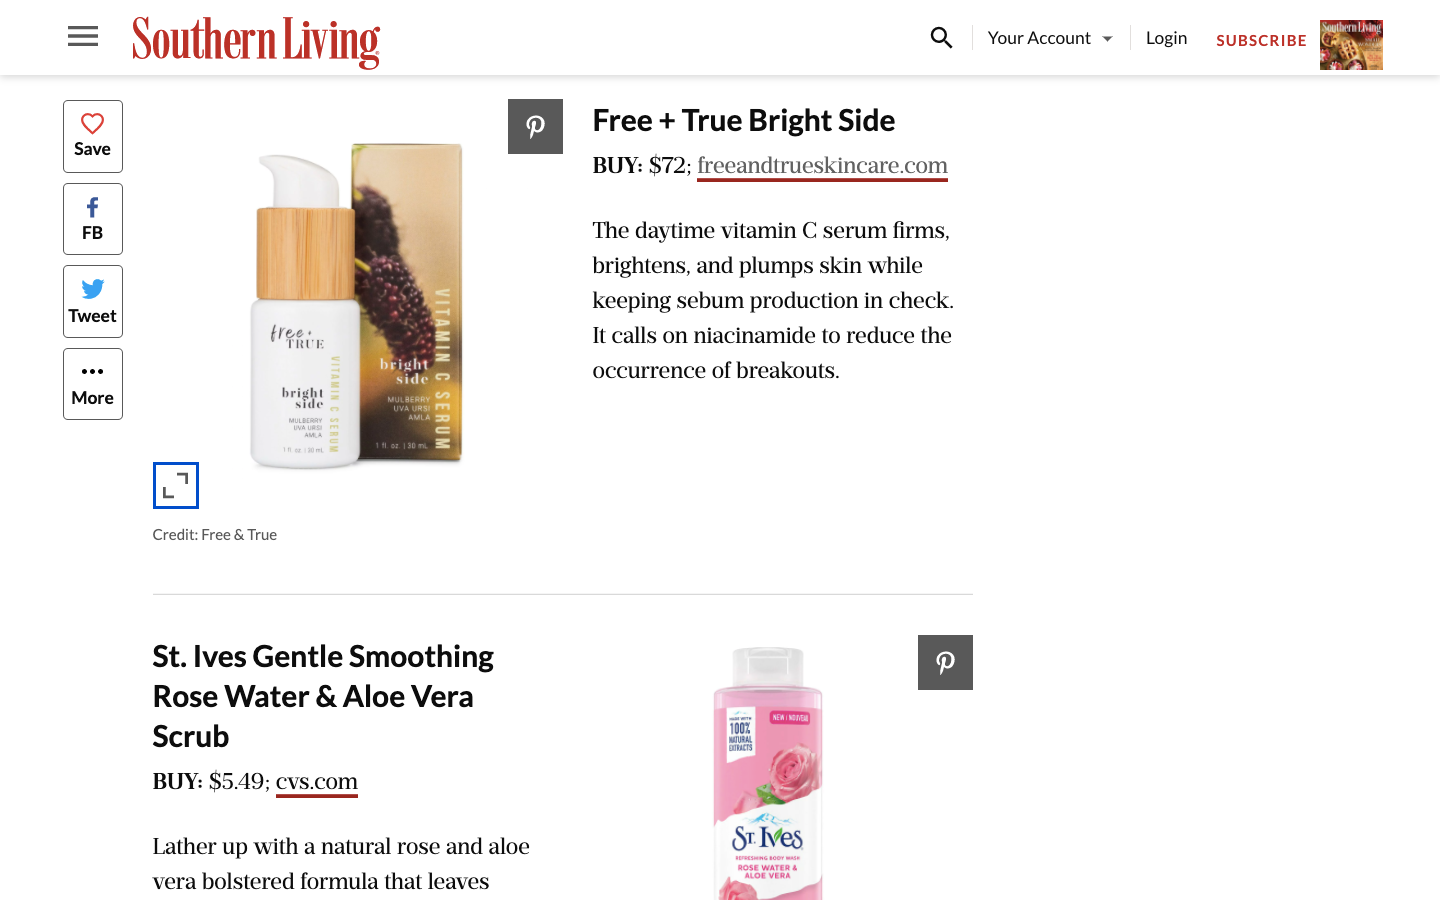 Free + True Skincare featured in Southern Living